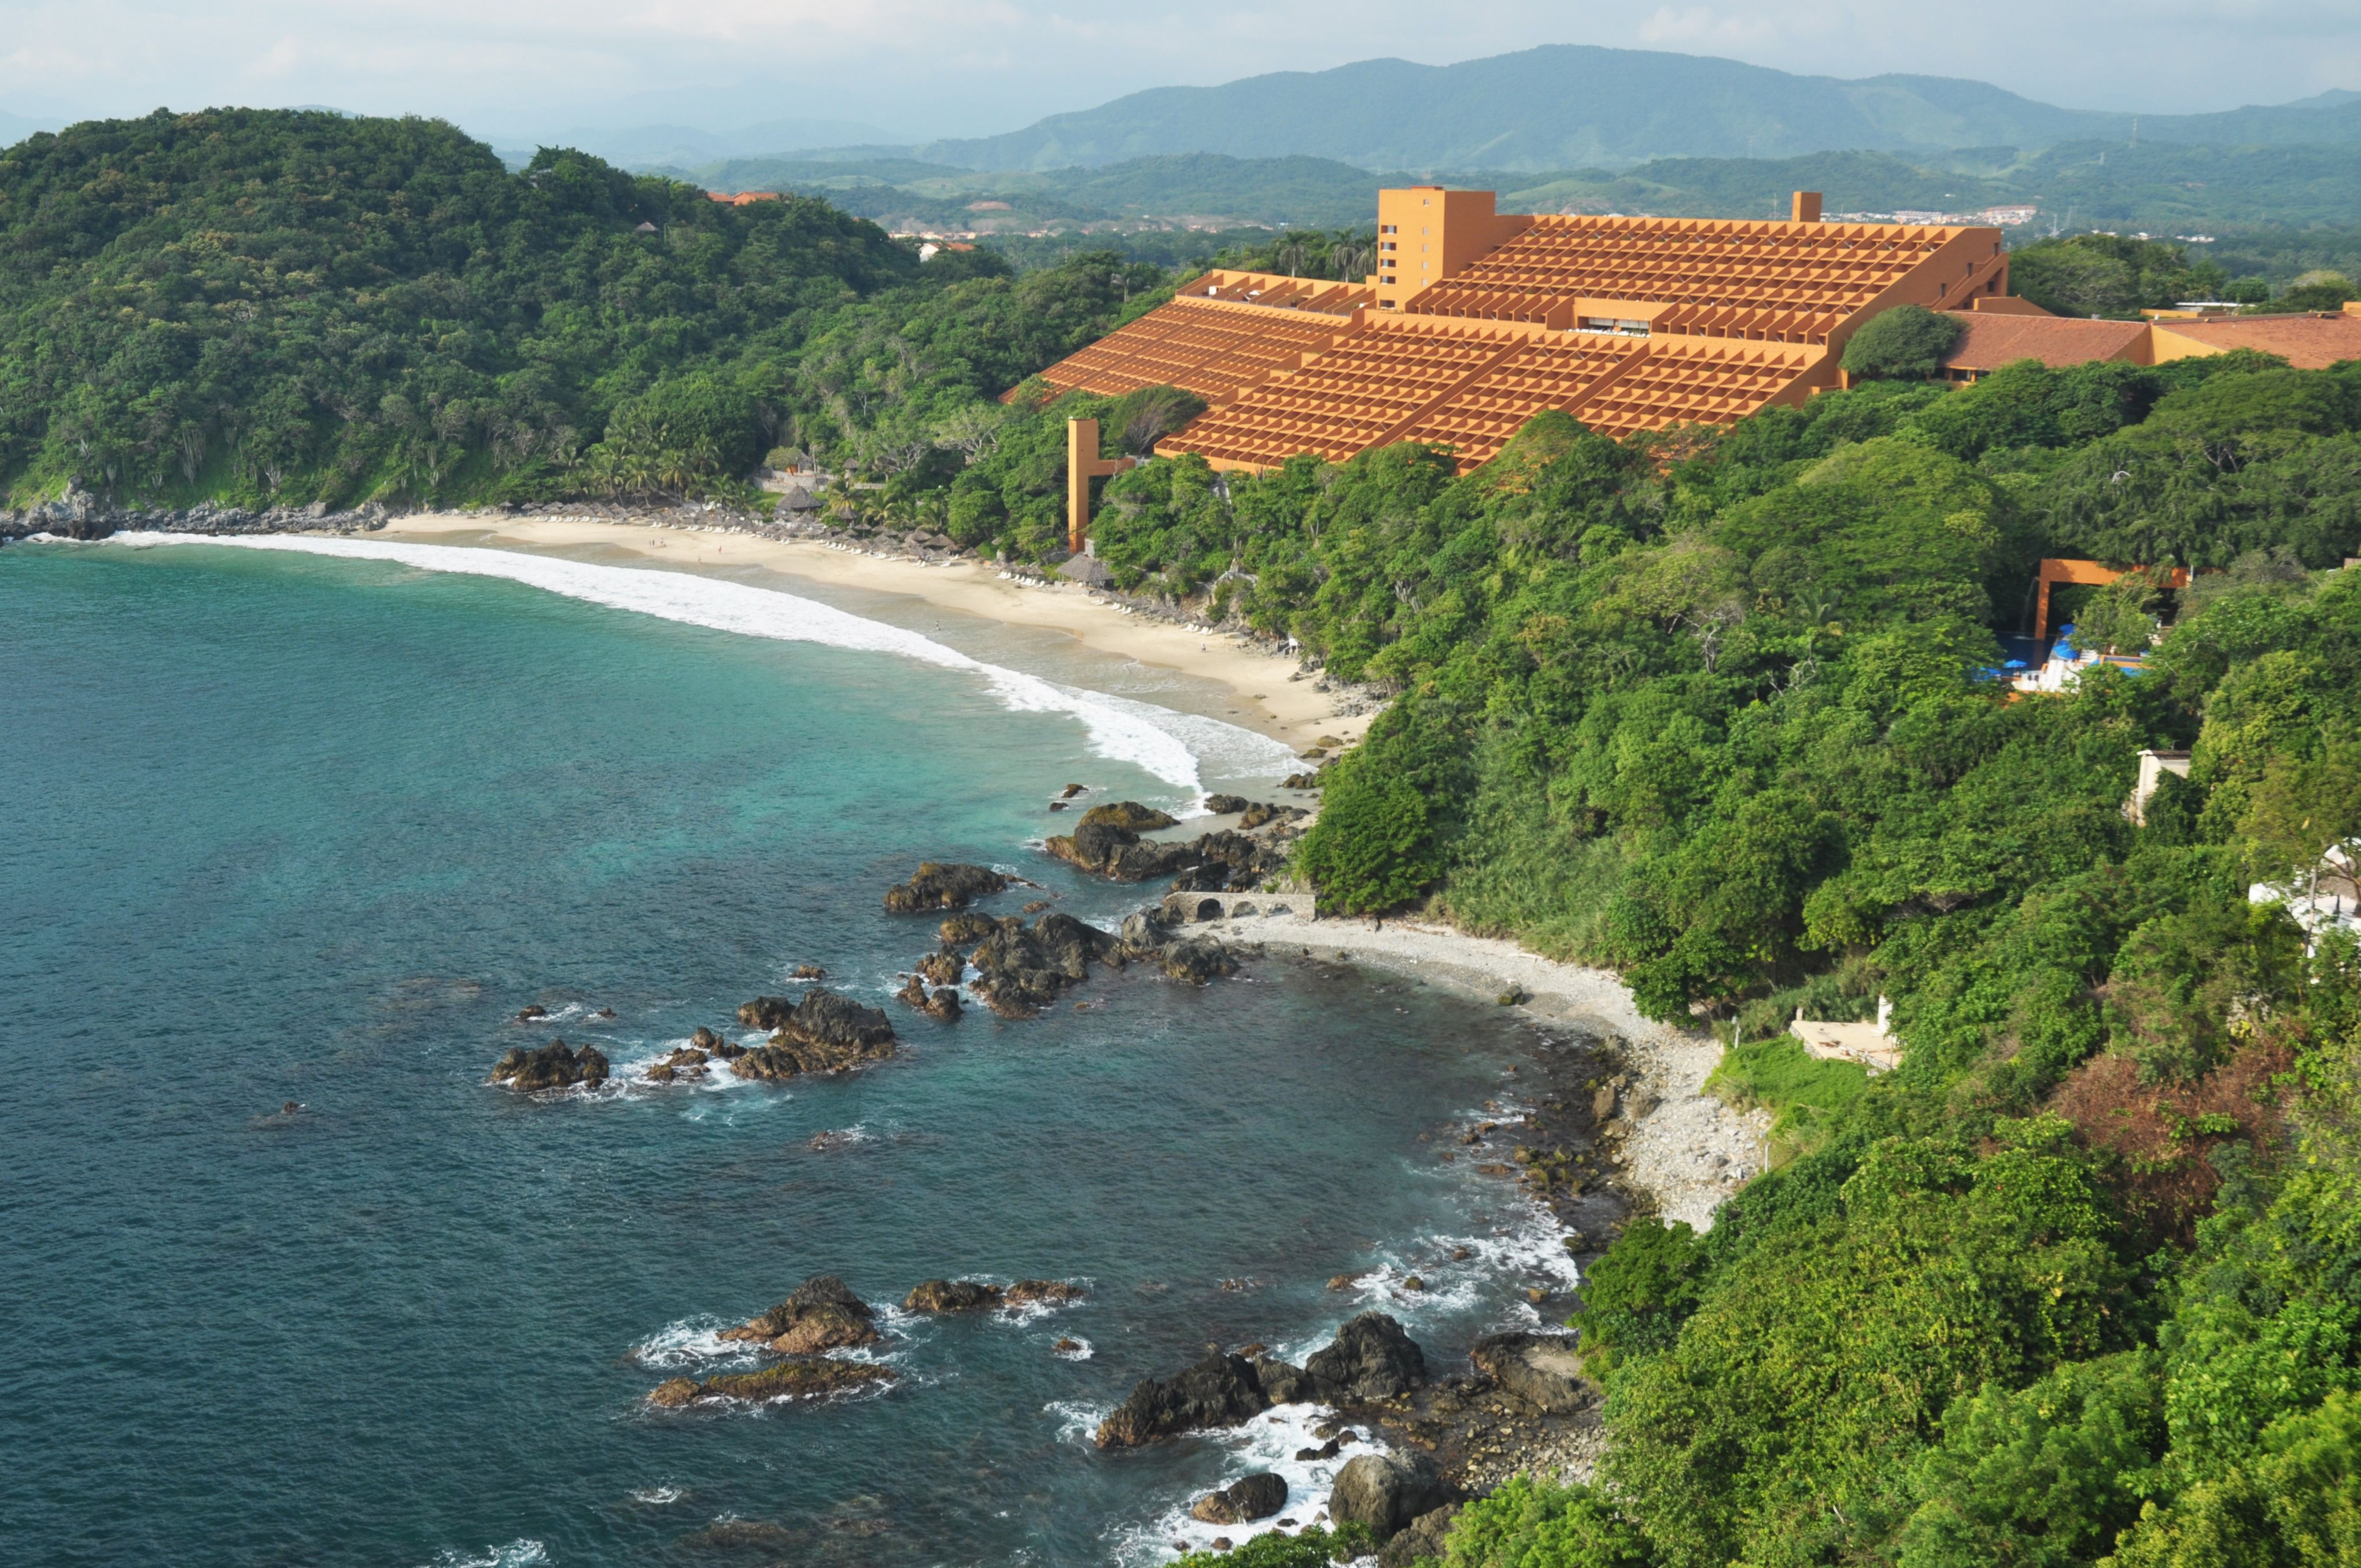 Las Brisas Ixtapa one of the brand's most popular resort has a new contemporary look with major changes in its guest rooms, hallways, meeting space and restaurants.